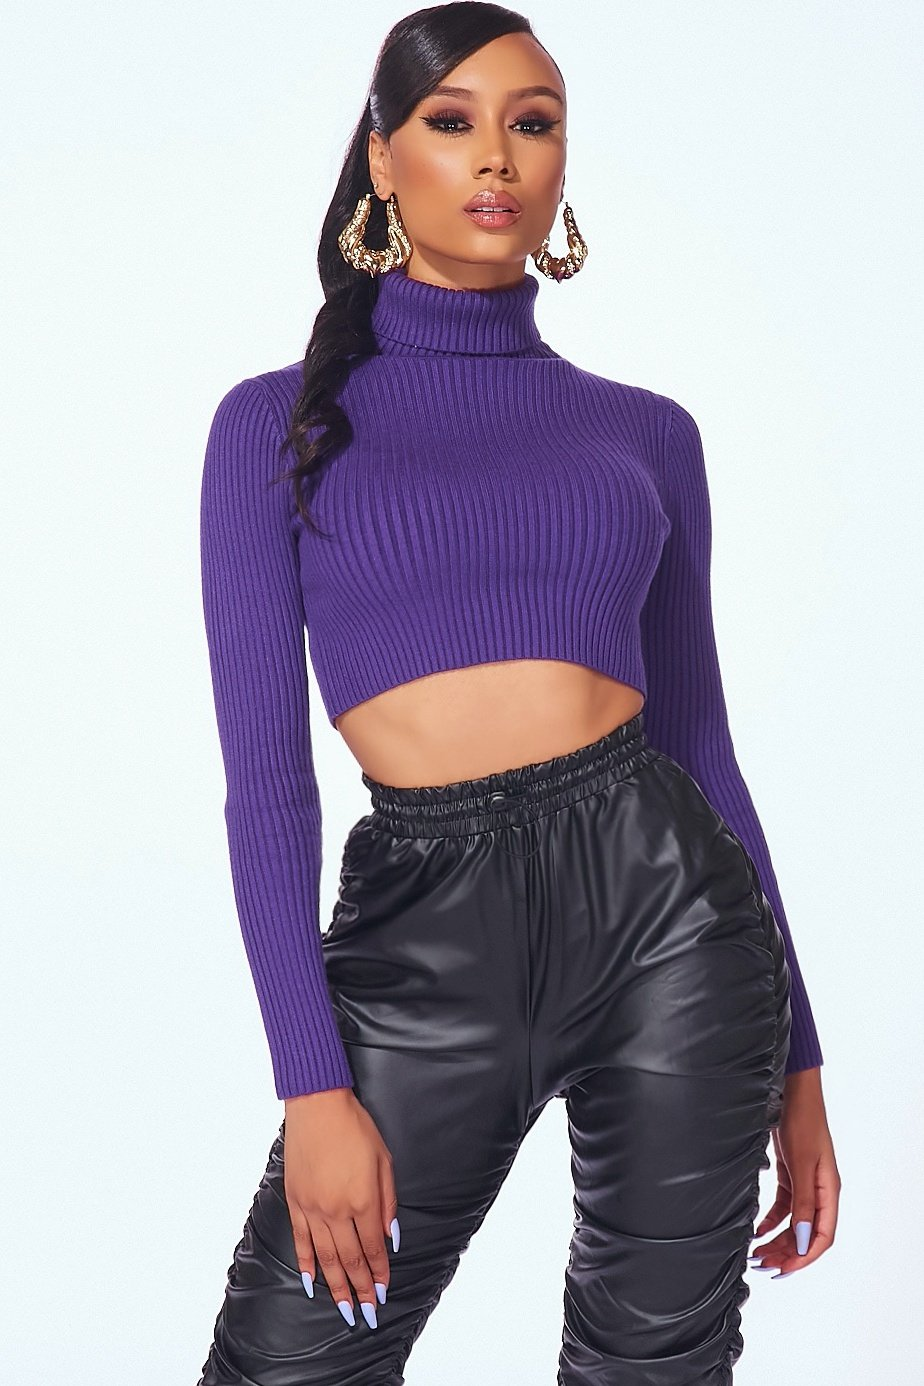 Purple Cropped Knit Turtleneck Sweater Top - Style Delivers